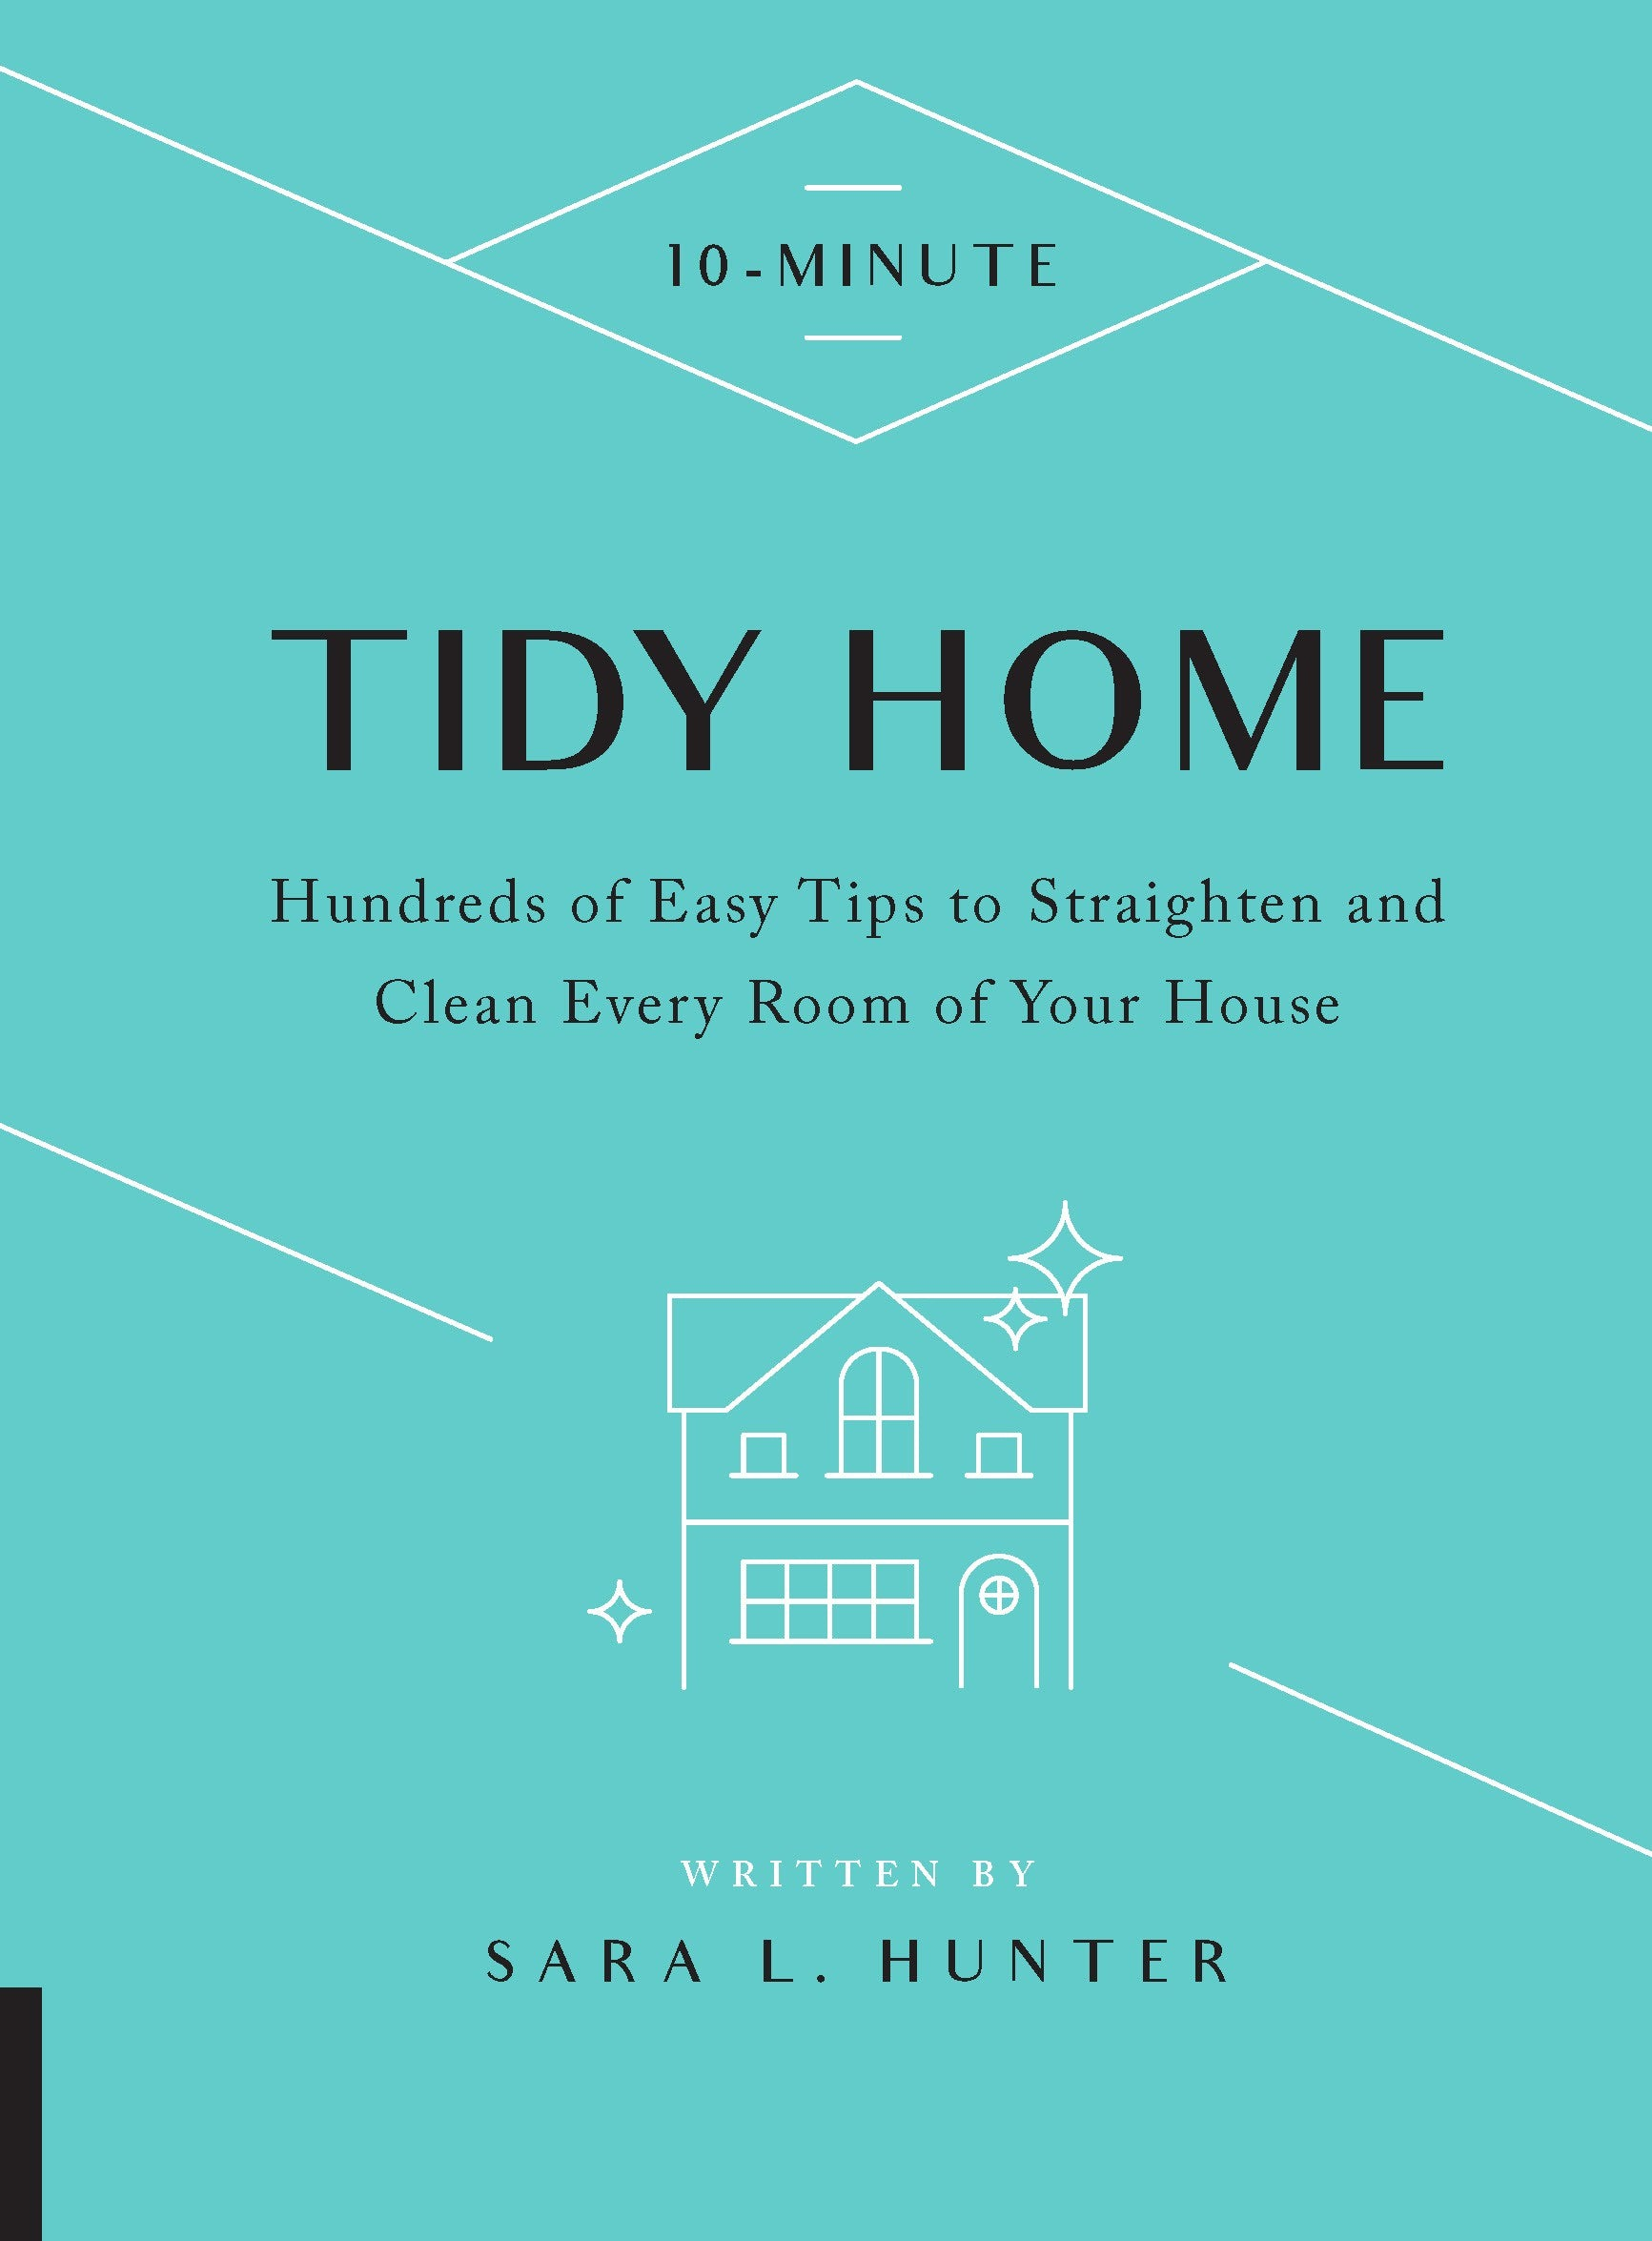 10 Minute Tidy Home by Sara L. Hunter